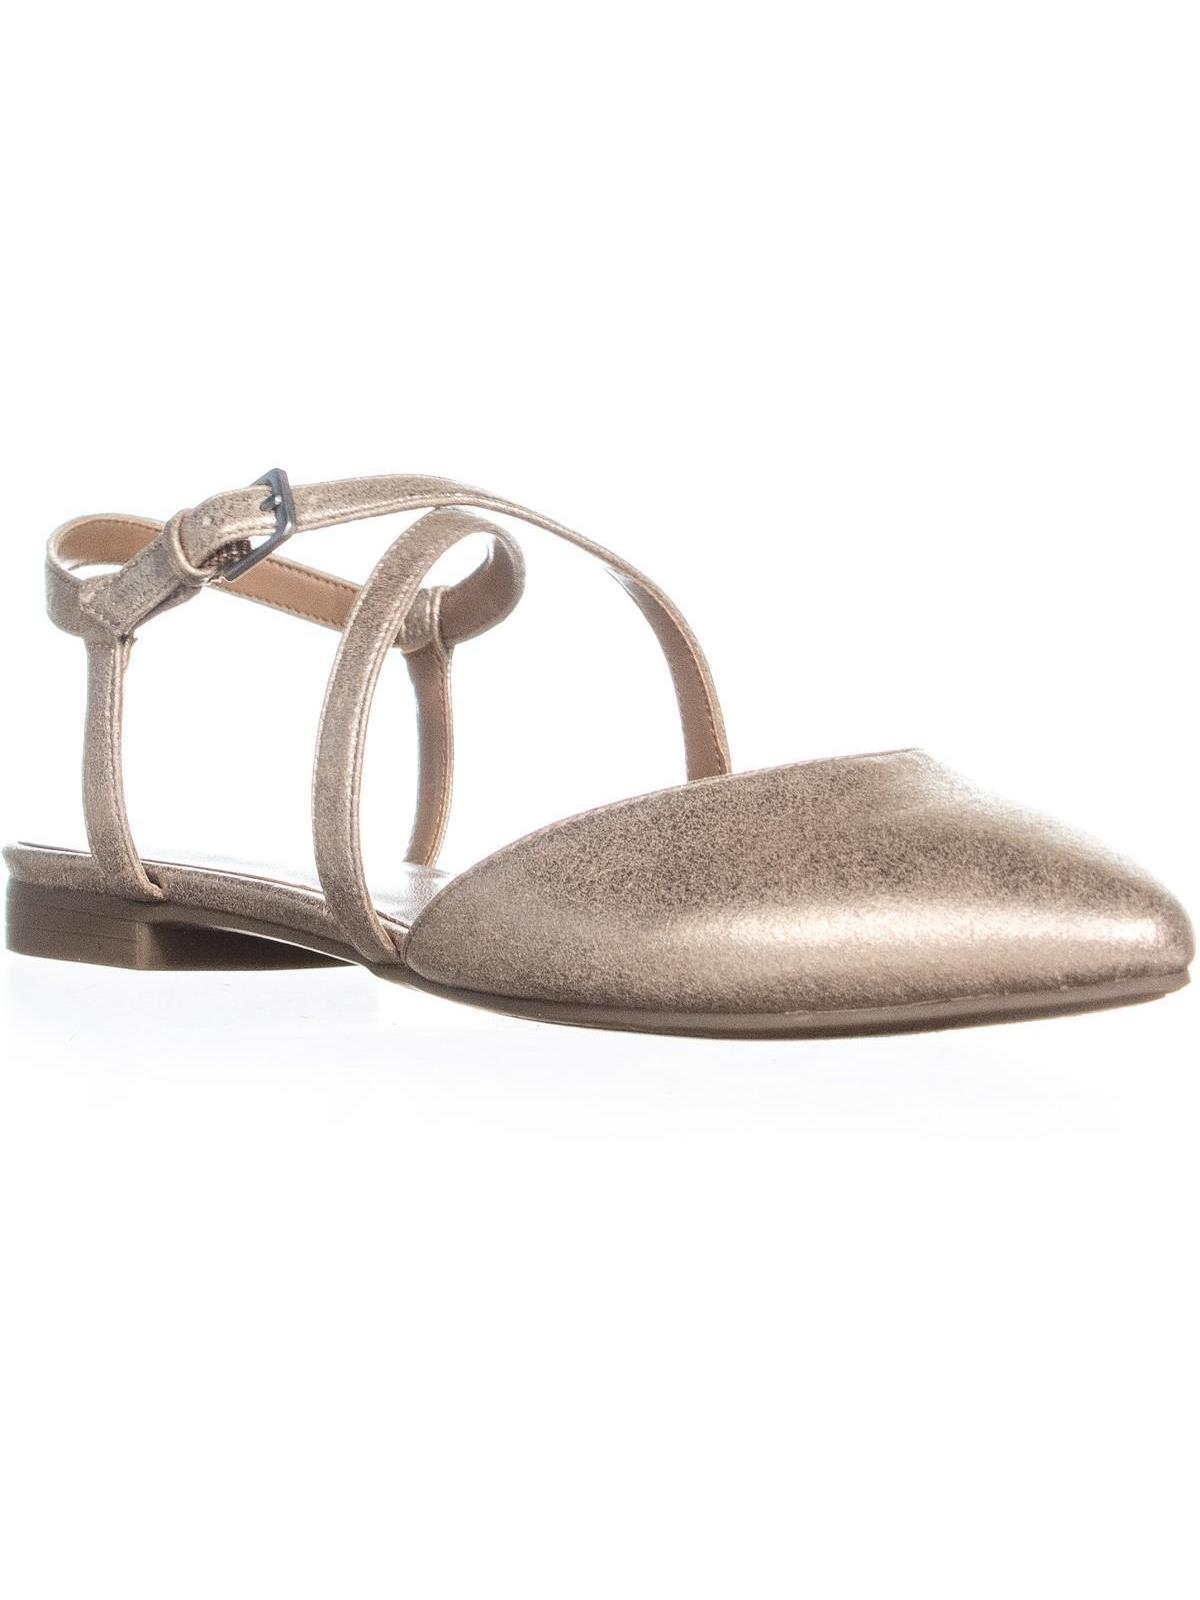 Womens Indigo Rd. Genetic2 Ankle Strap Ballet Flats, Gold, 6.5 US